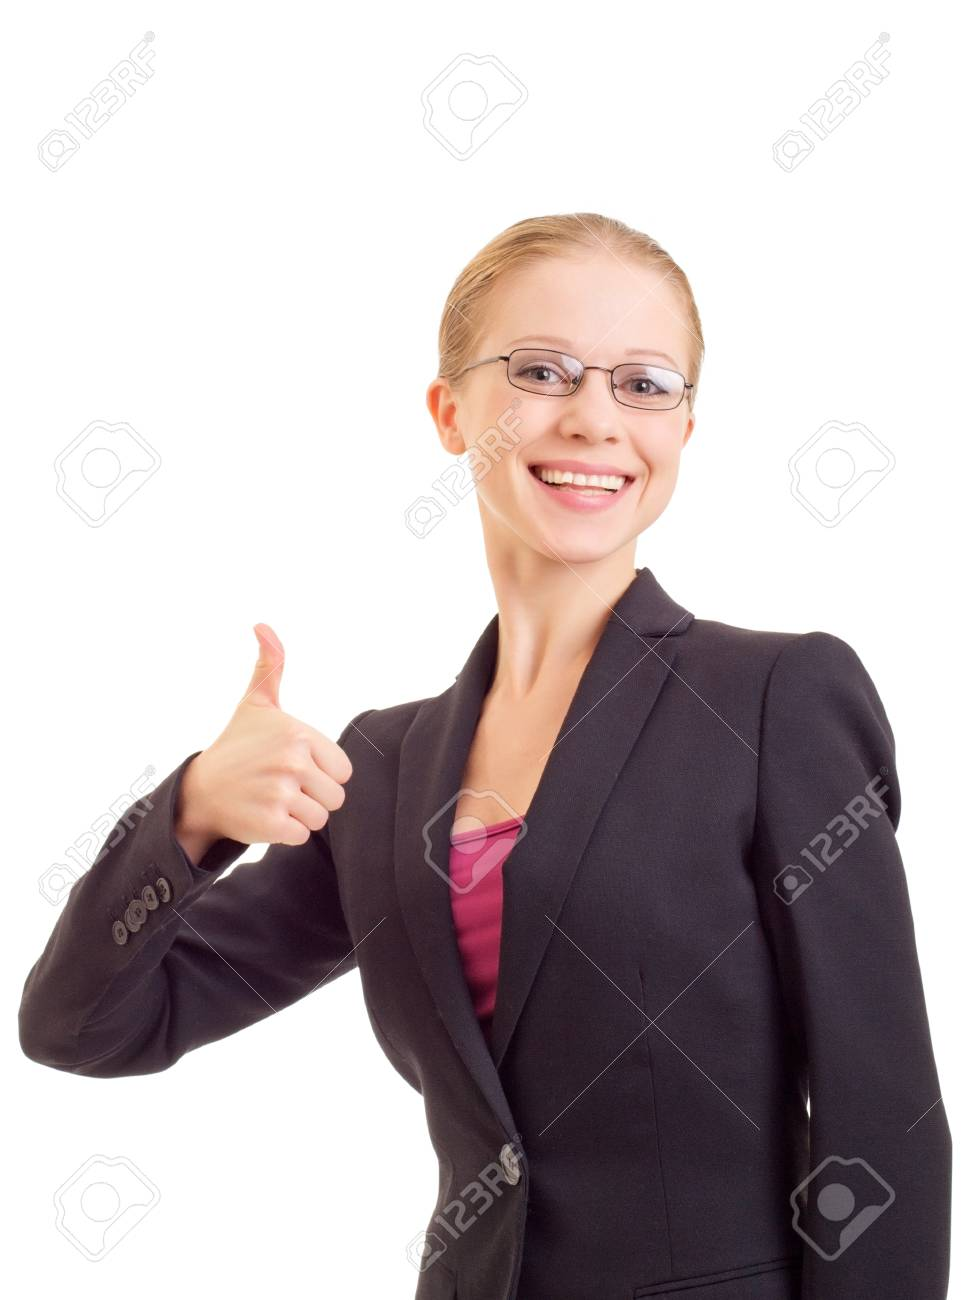 young business woman With Thumb Up Stock Photo - 11027969